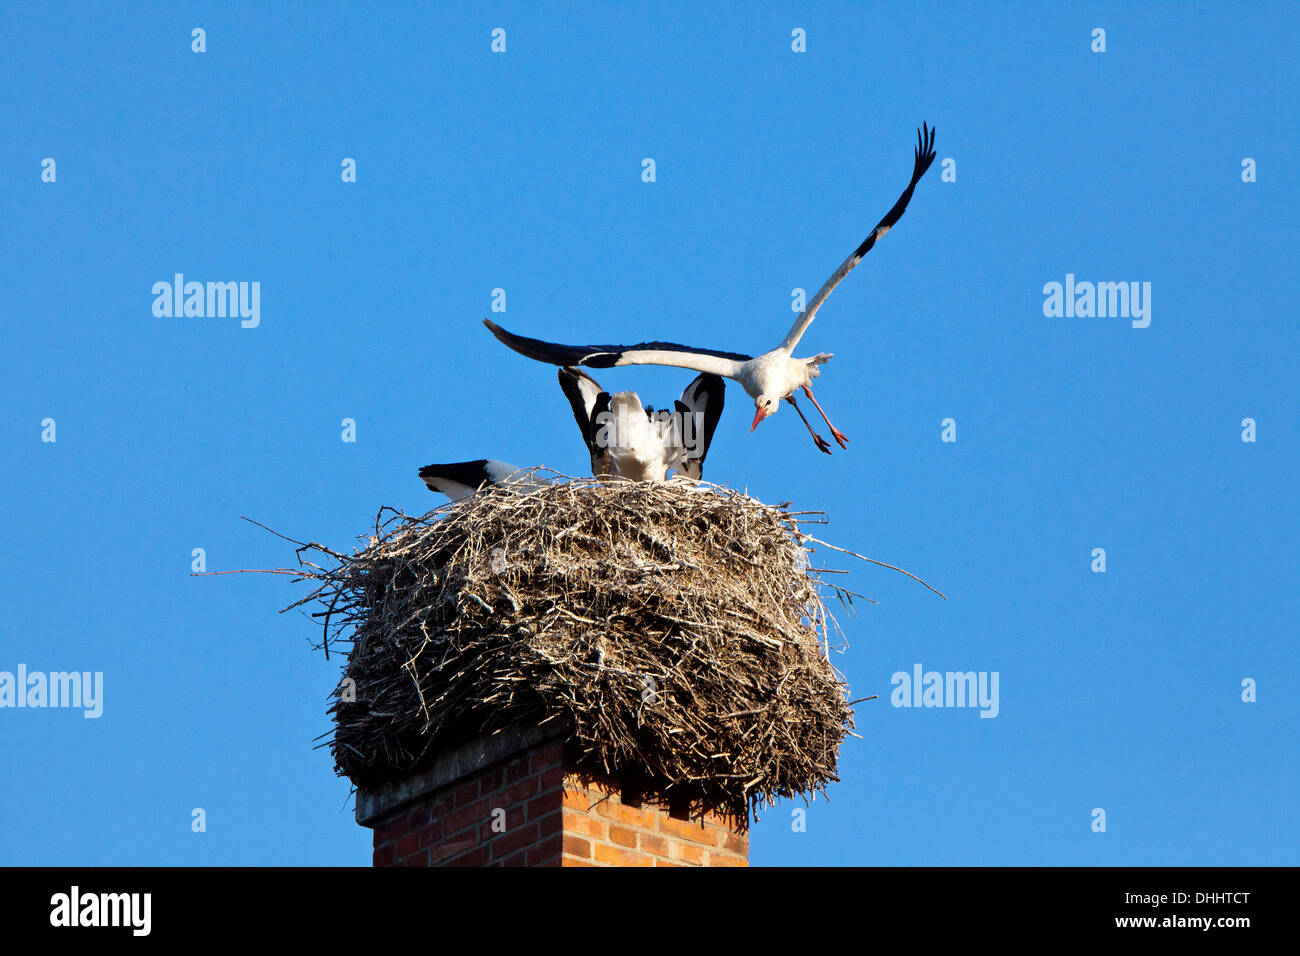 Stork family nest on a chimney, Breeding, Birds - Stock Image